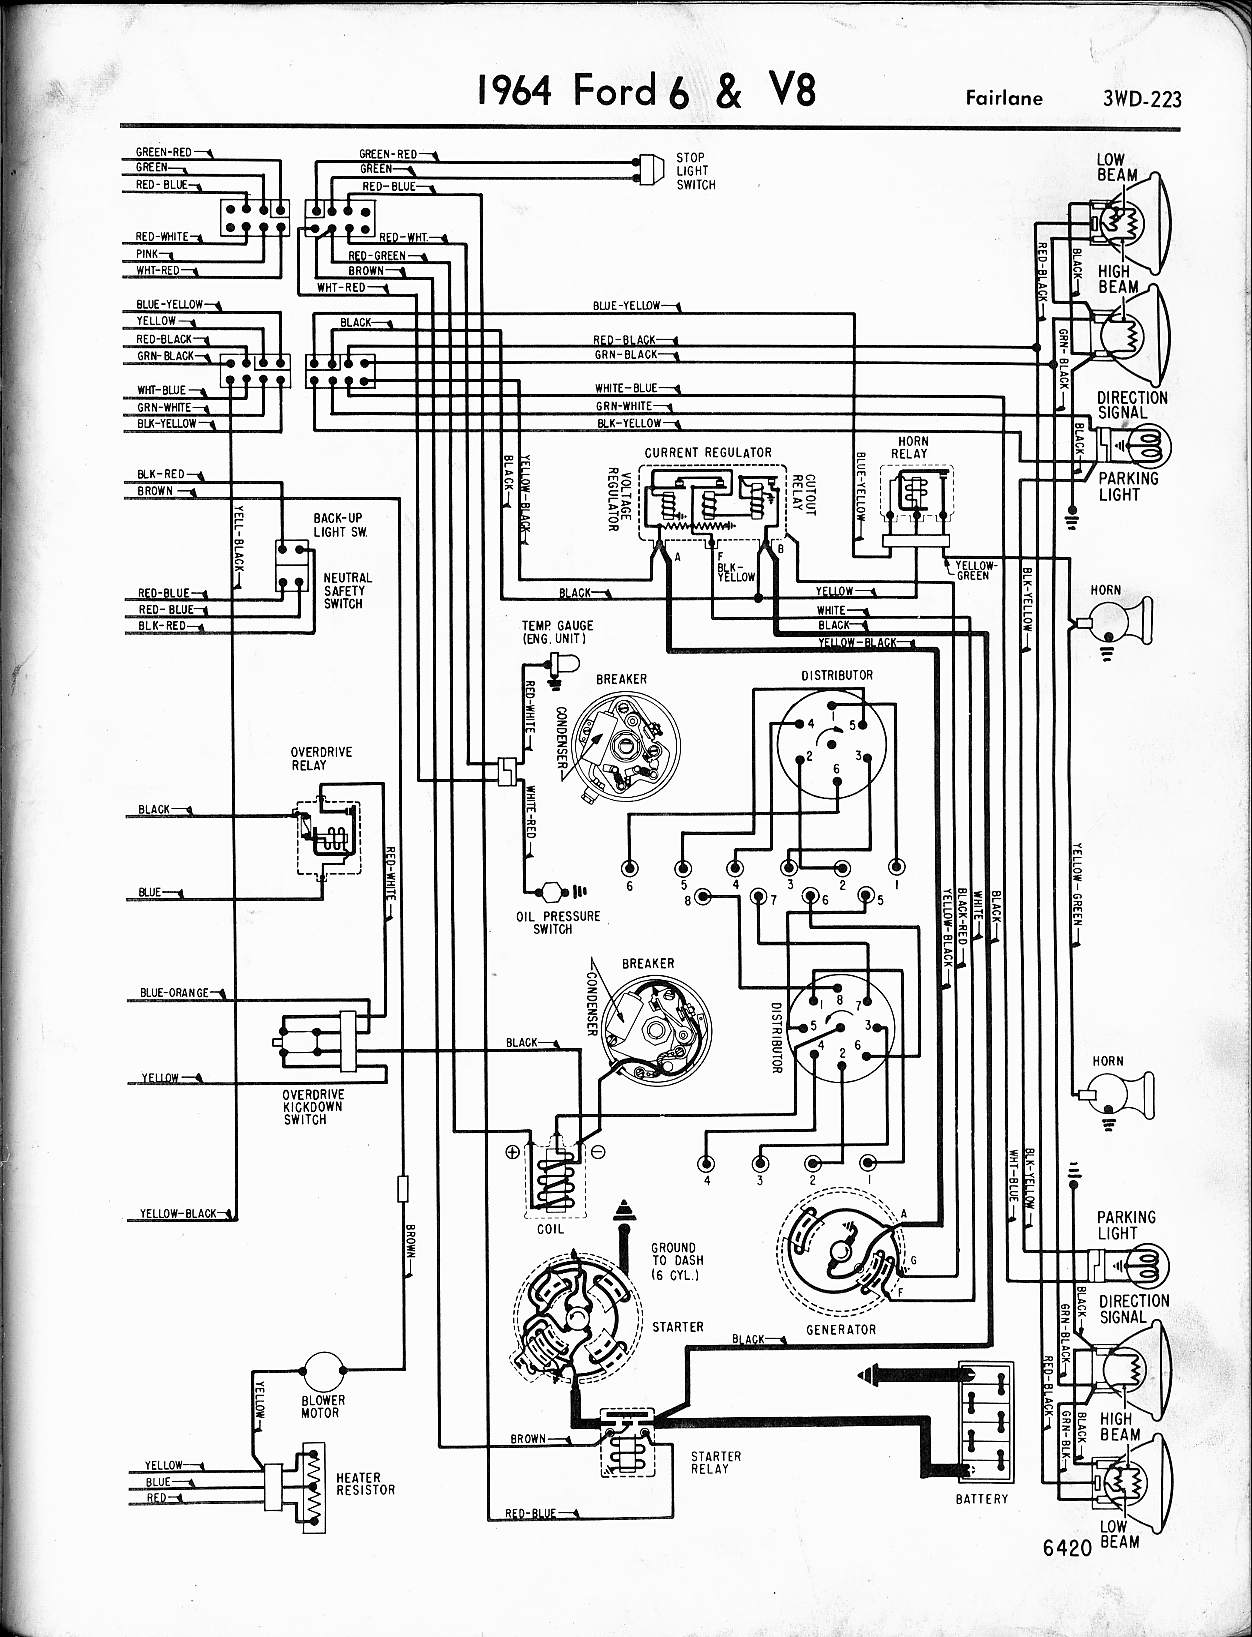 MWire5765 223 57 65 ford wiring diagrams Ford E 350 Wiring Diagrams at mifinder.co